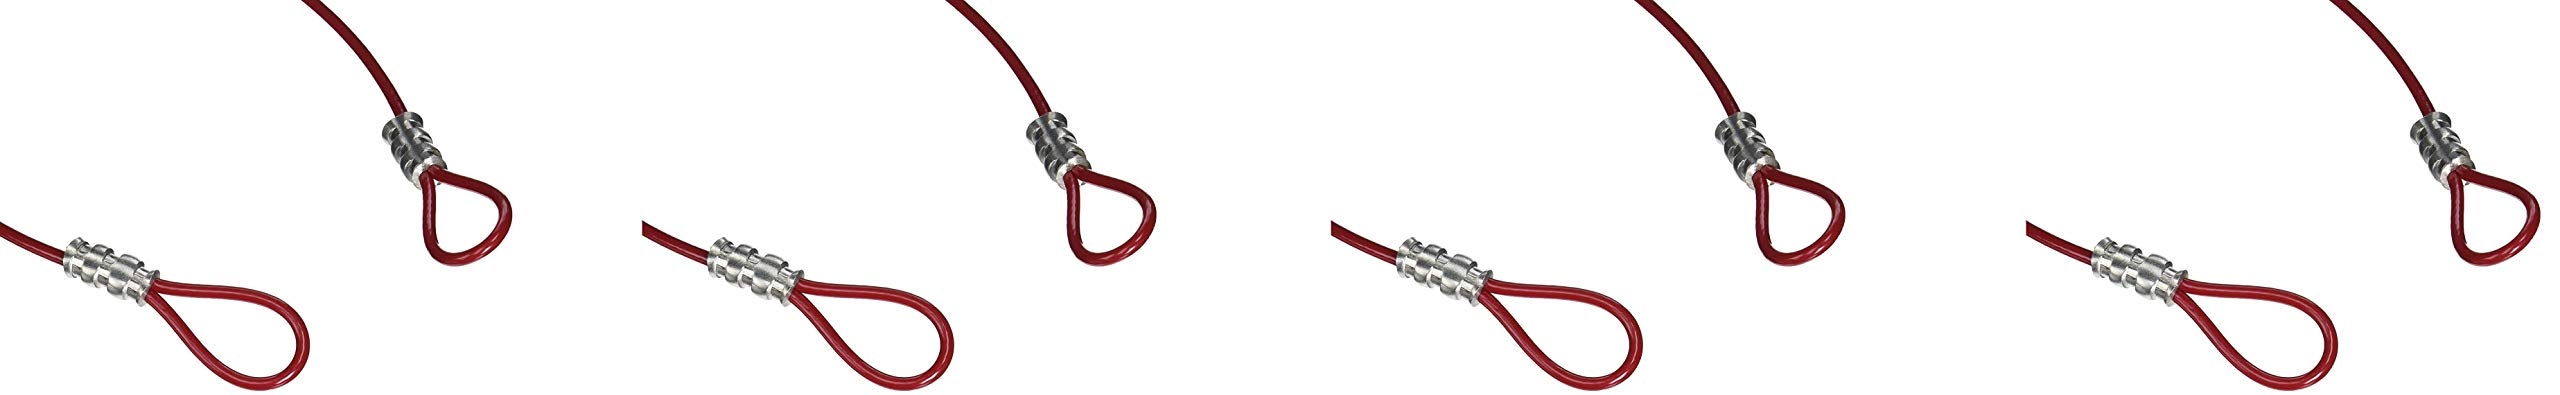 Brady Double Looped Lockout Cable - Plastic Coated Steel, 2' Cable, Red - 131063 (Fоur Paсk, Red)